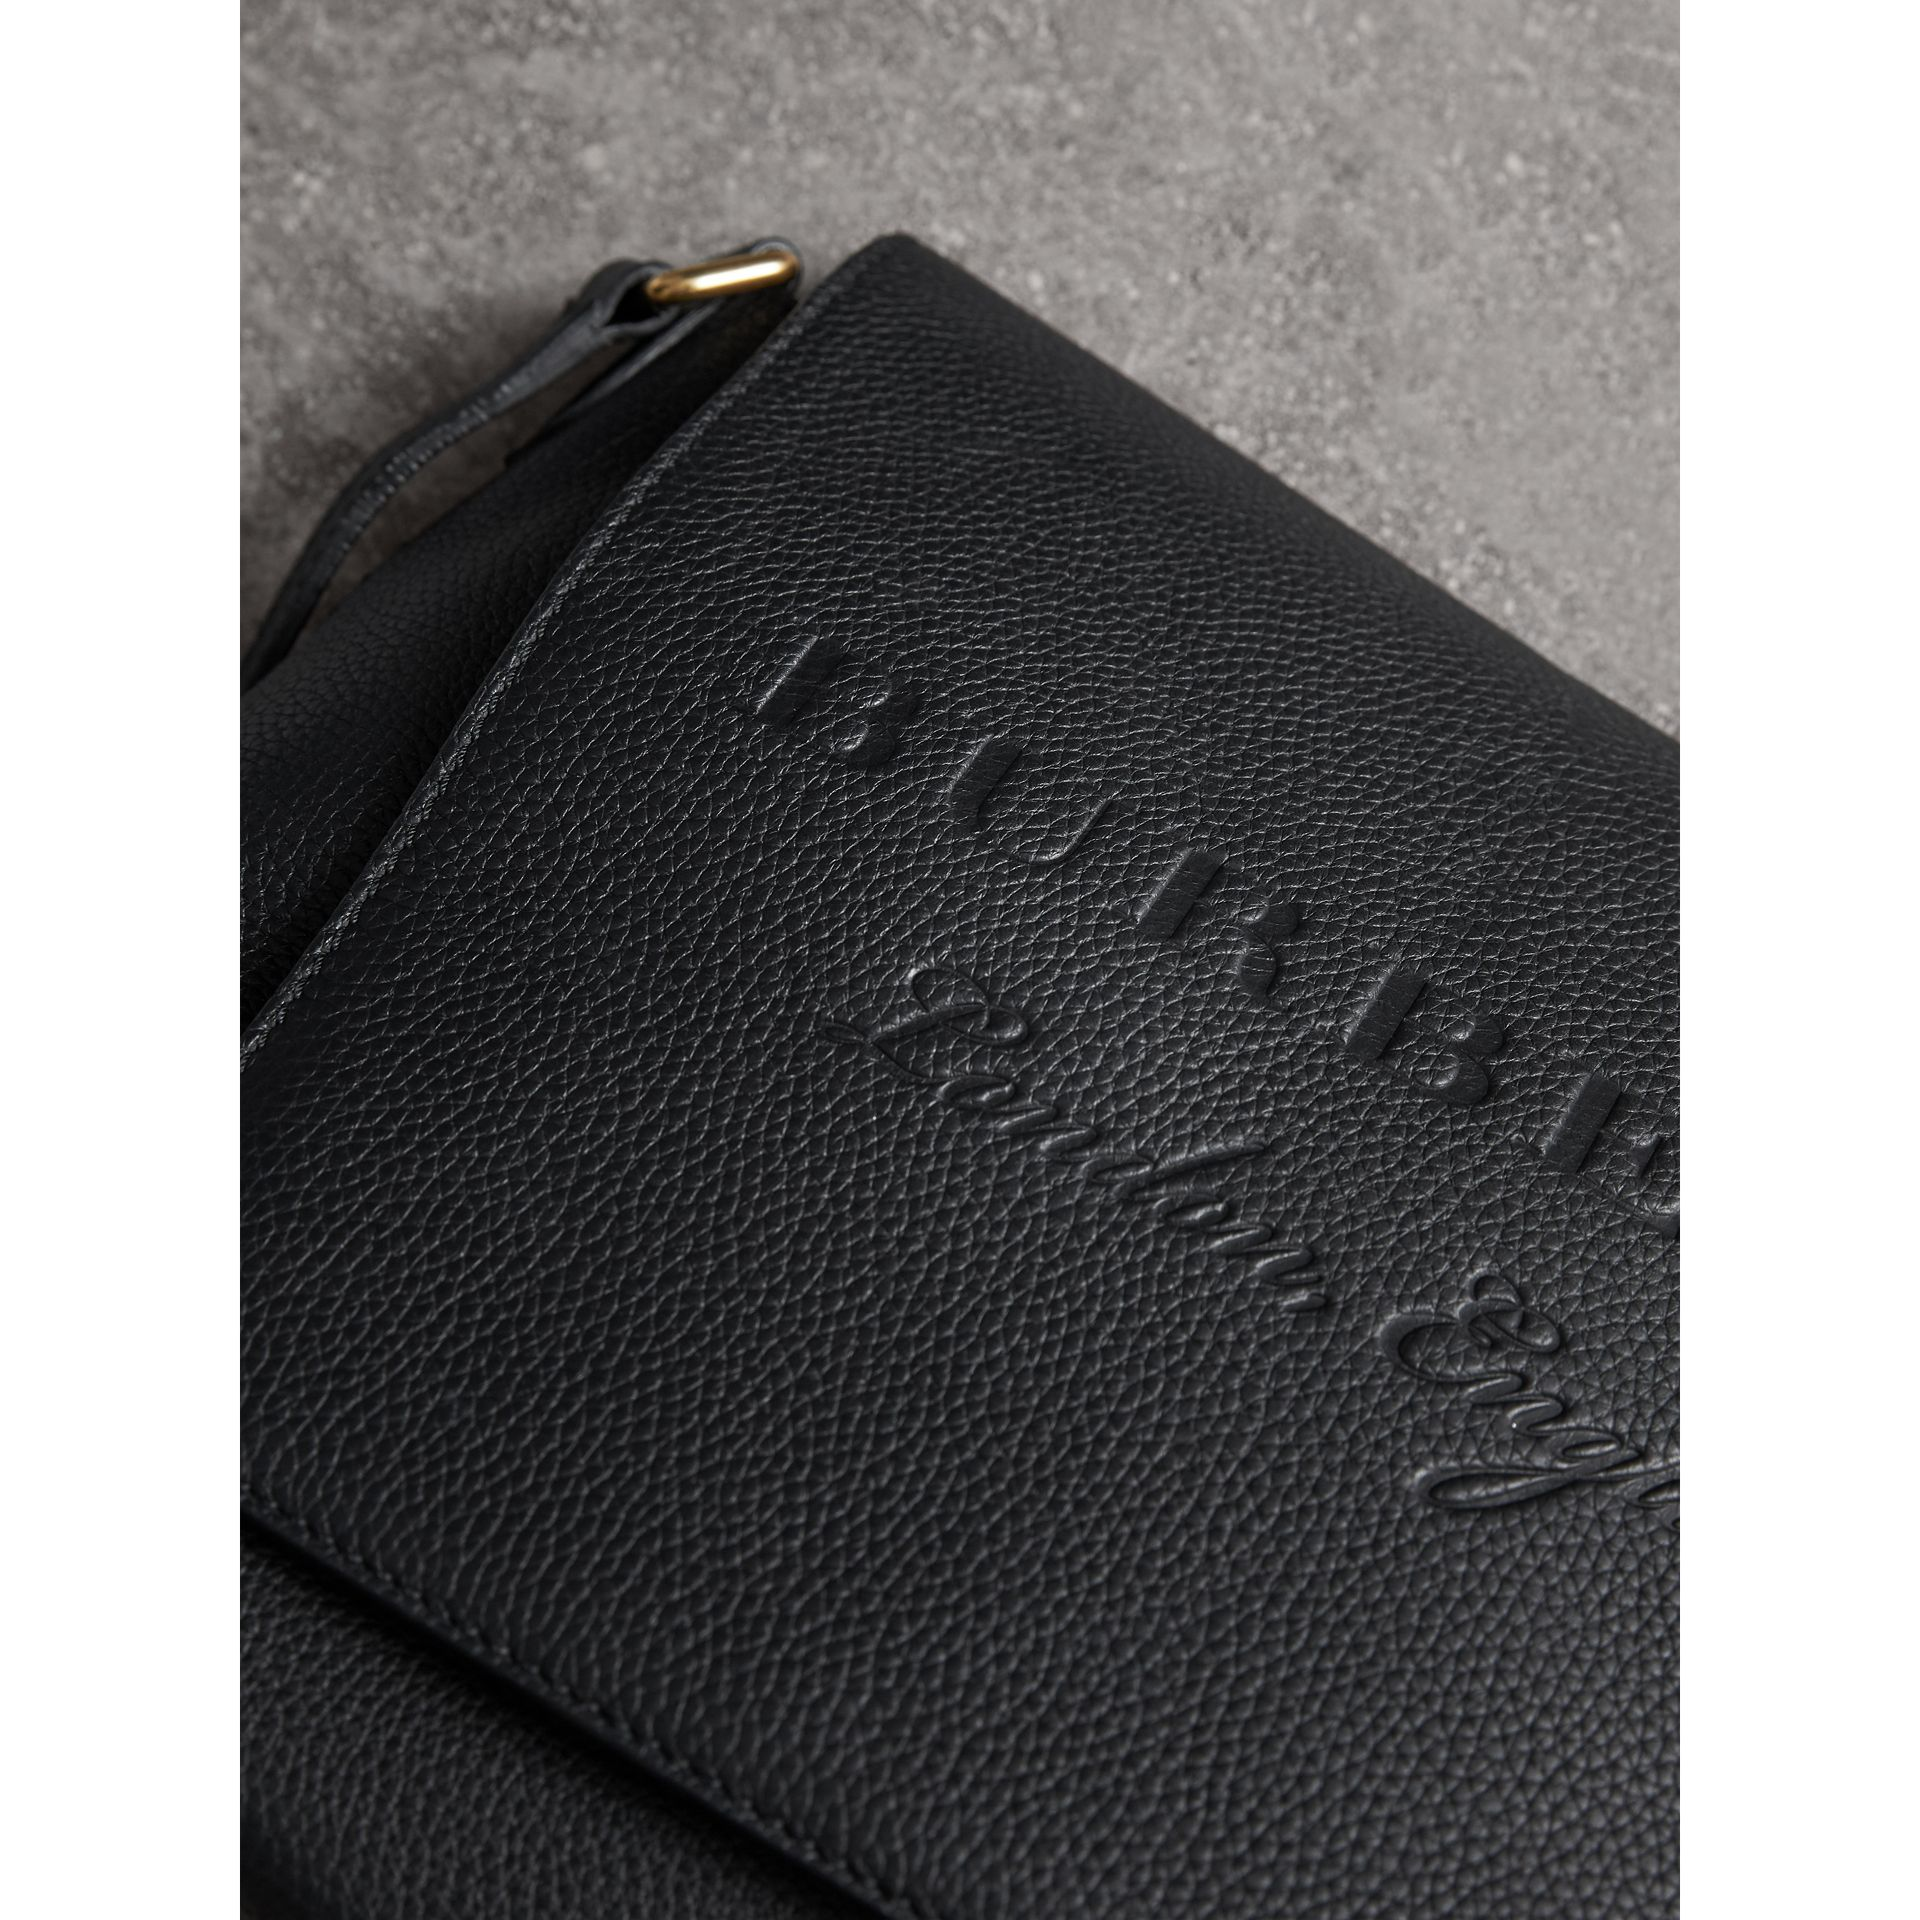 Medium Embossed Leather Messenger Bag in Black - Women | Burberry - gallery image 2